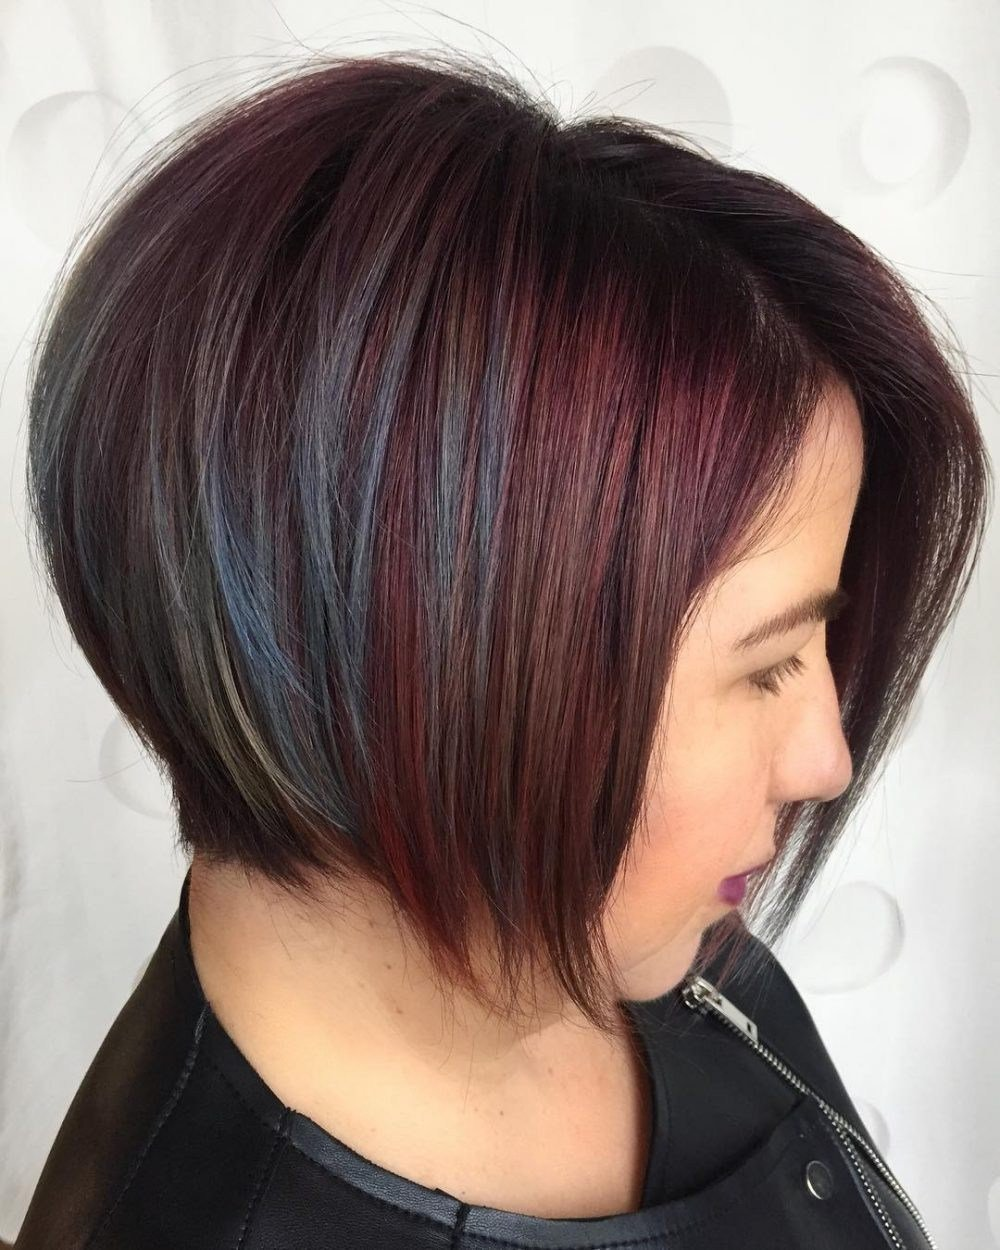 New 21 Classy Short Haircuts Hairstyles For Thick Hair Sensod Ideas With Pictures